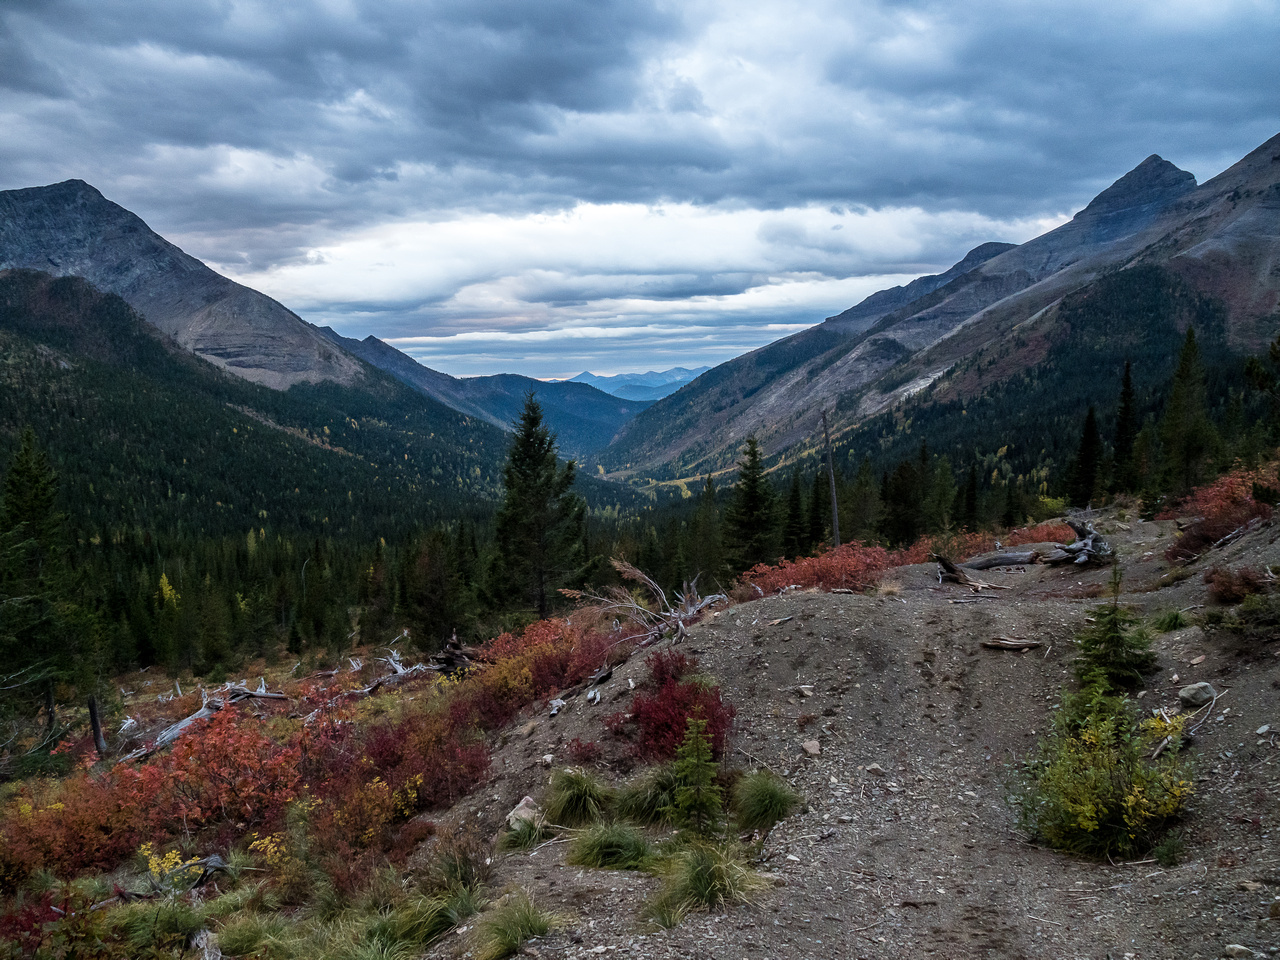 Finally on the dirt track heading back up to the pass, looking back down Middlepass Creek with Mount Krowicki rising at right.